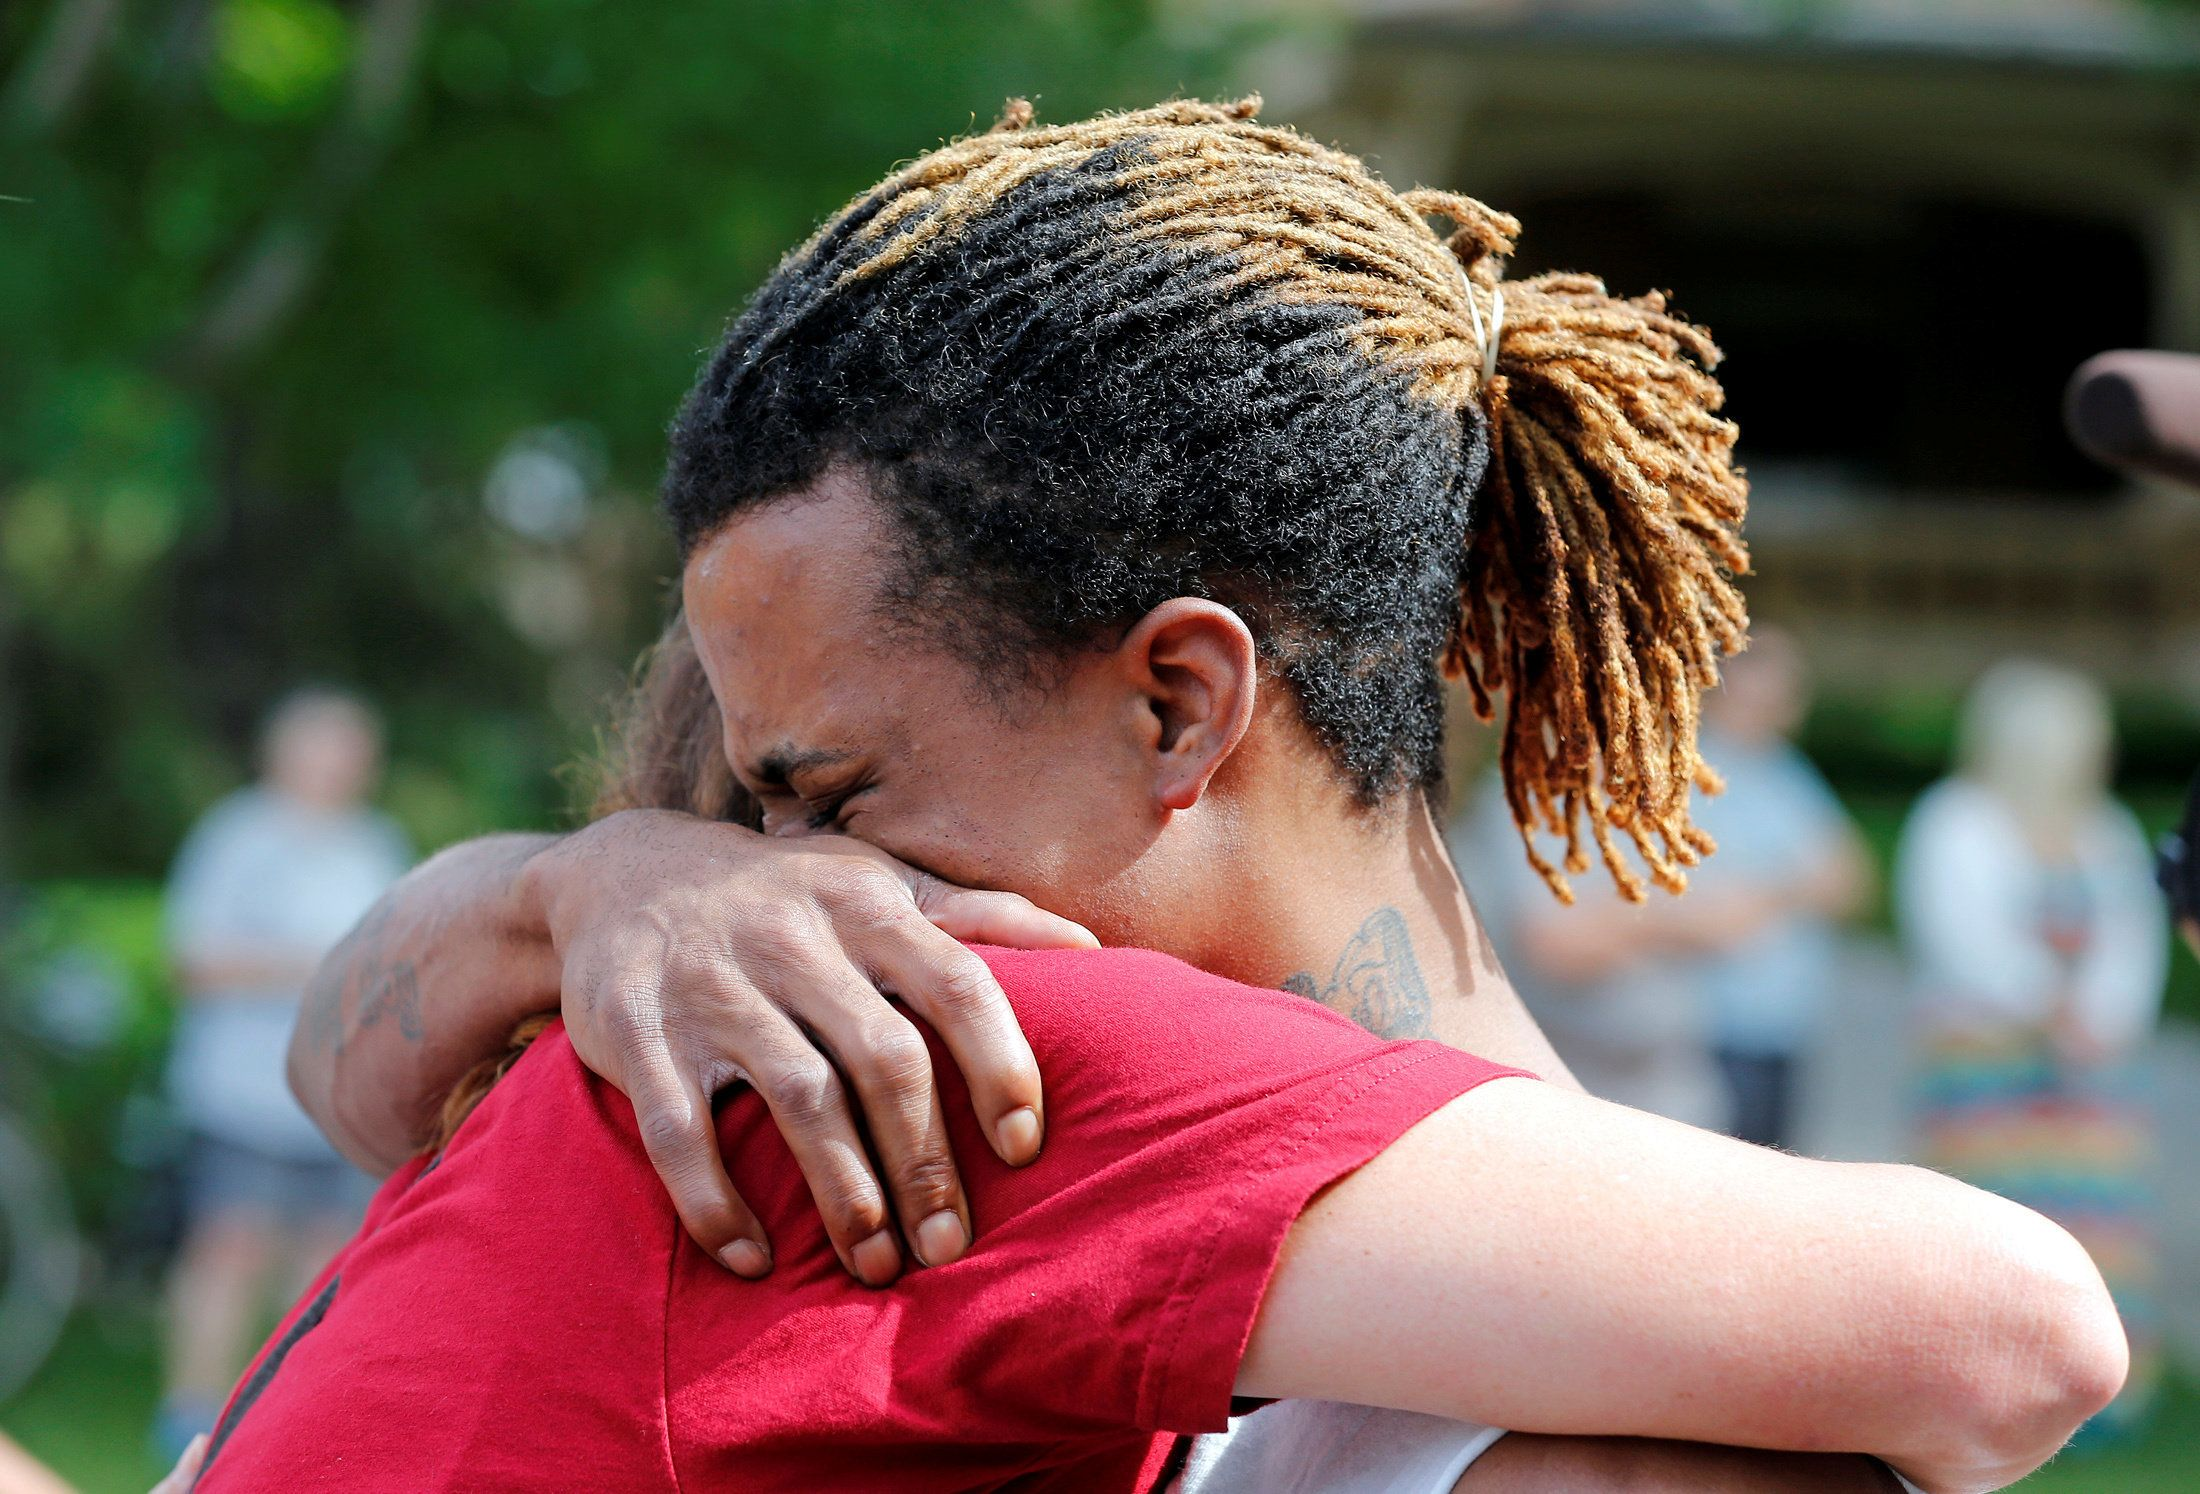 A cousin and a co-worker of Philando Castile try to console each other during a July 7 protest in St. Paul, Mi